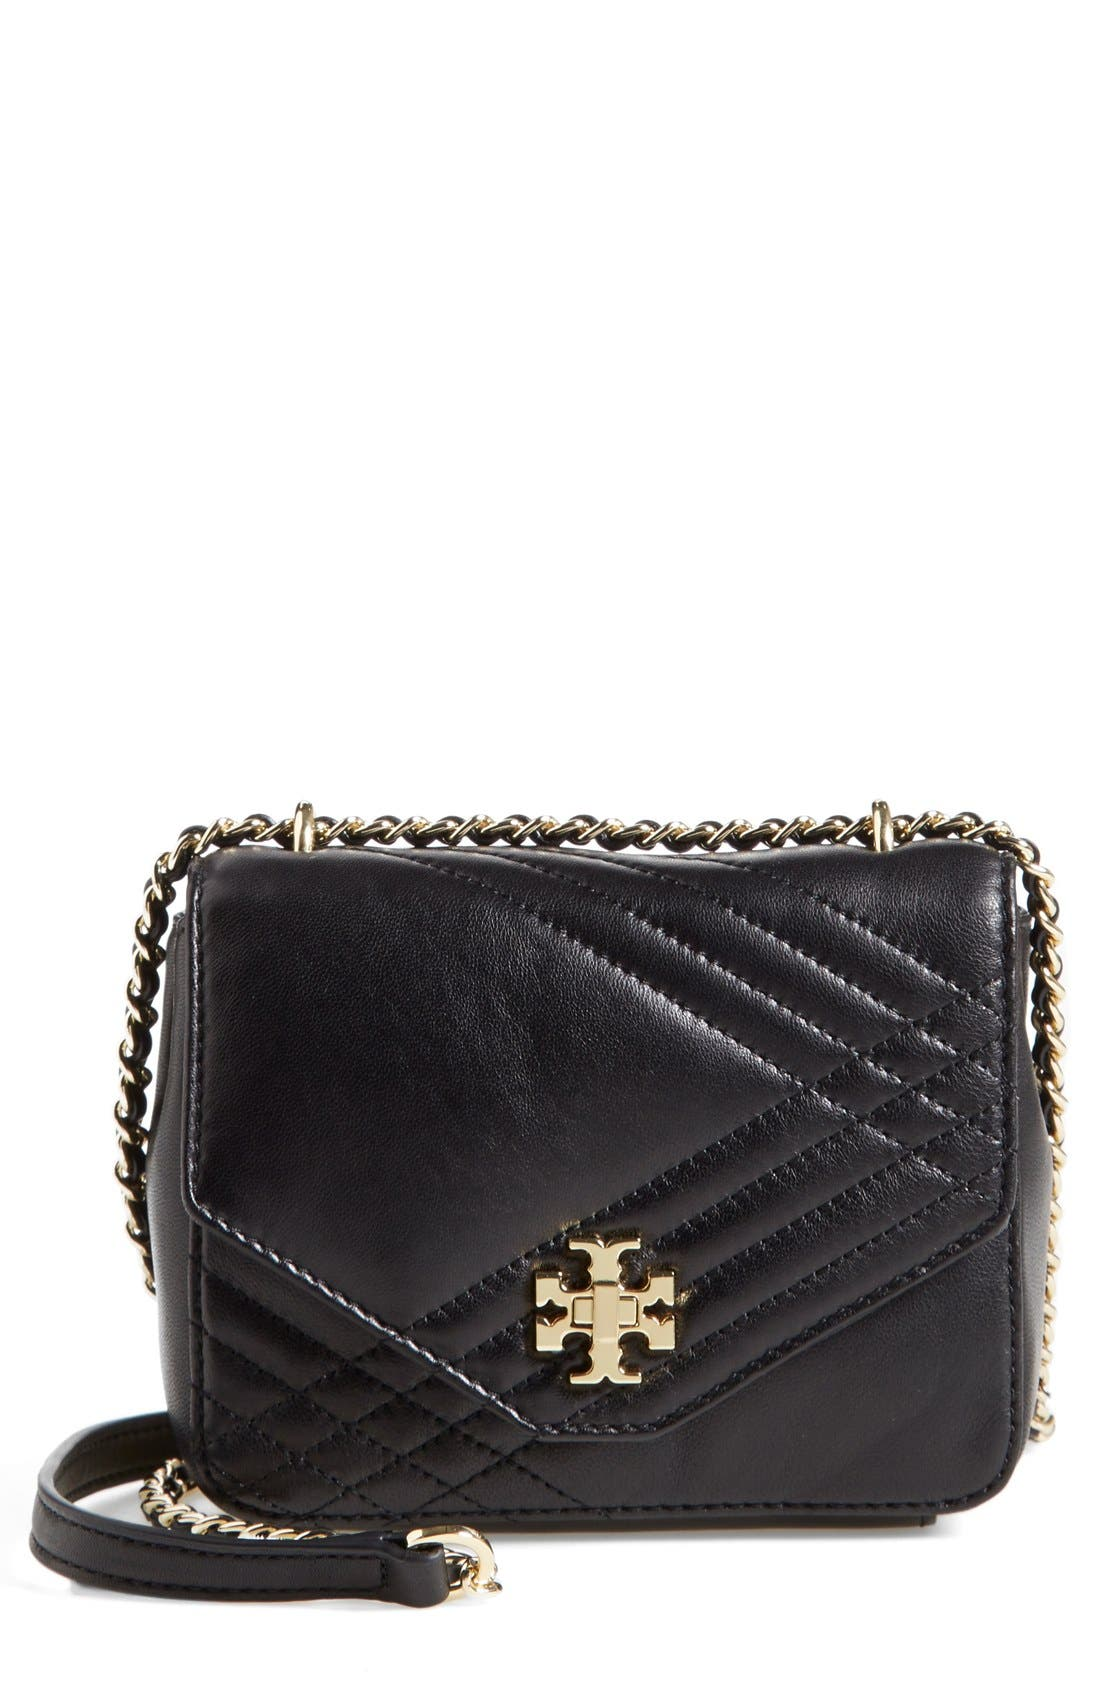 Main Image - Tory Burch 'Mini Kira' Quilted Crossbody Bag